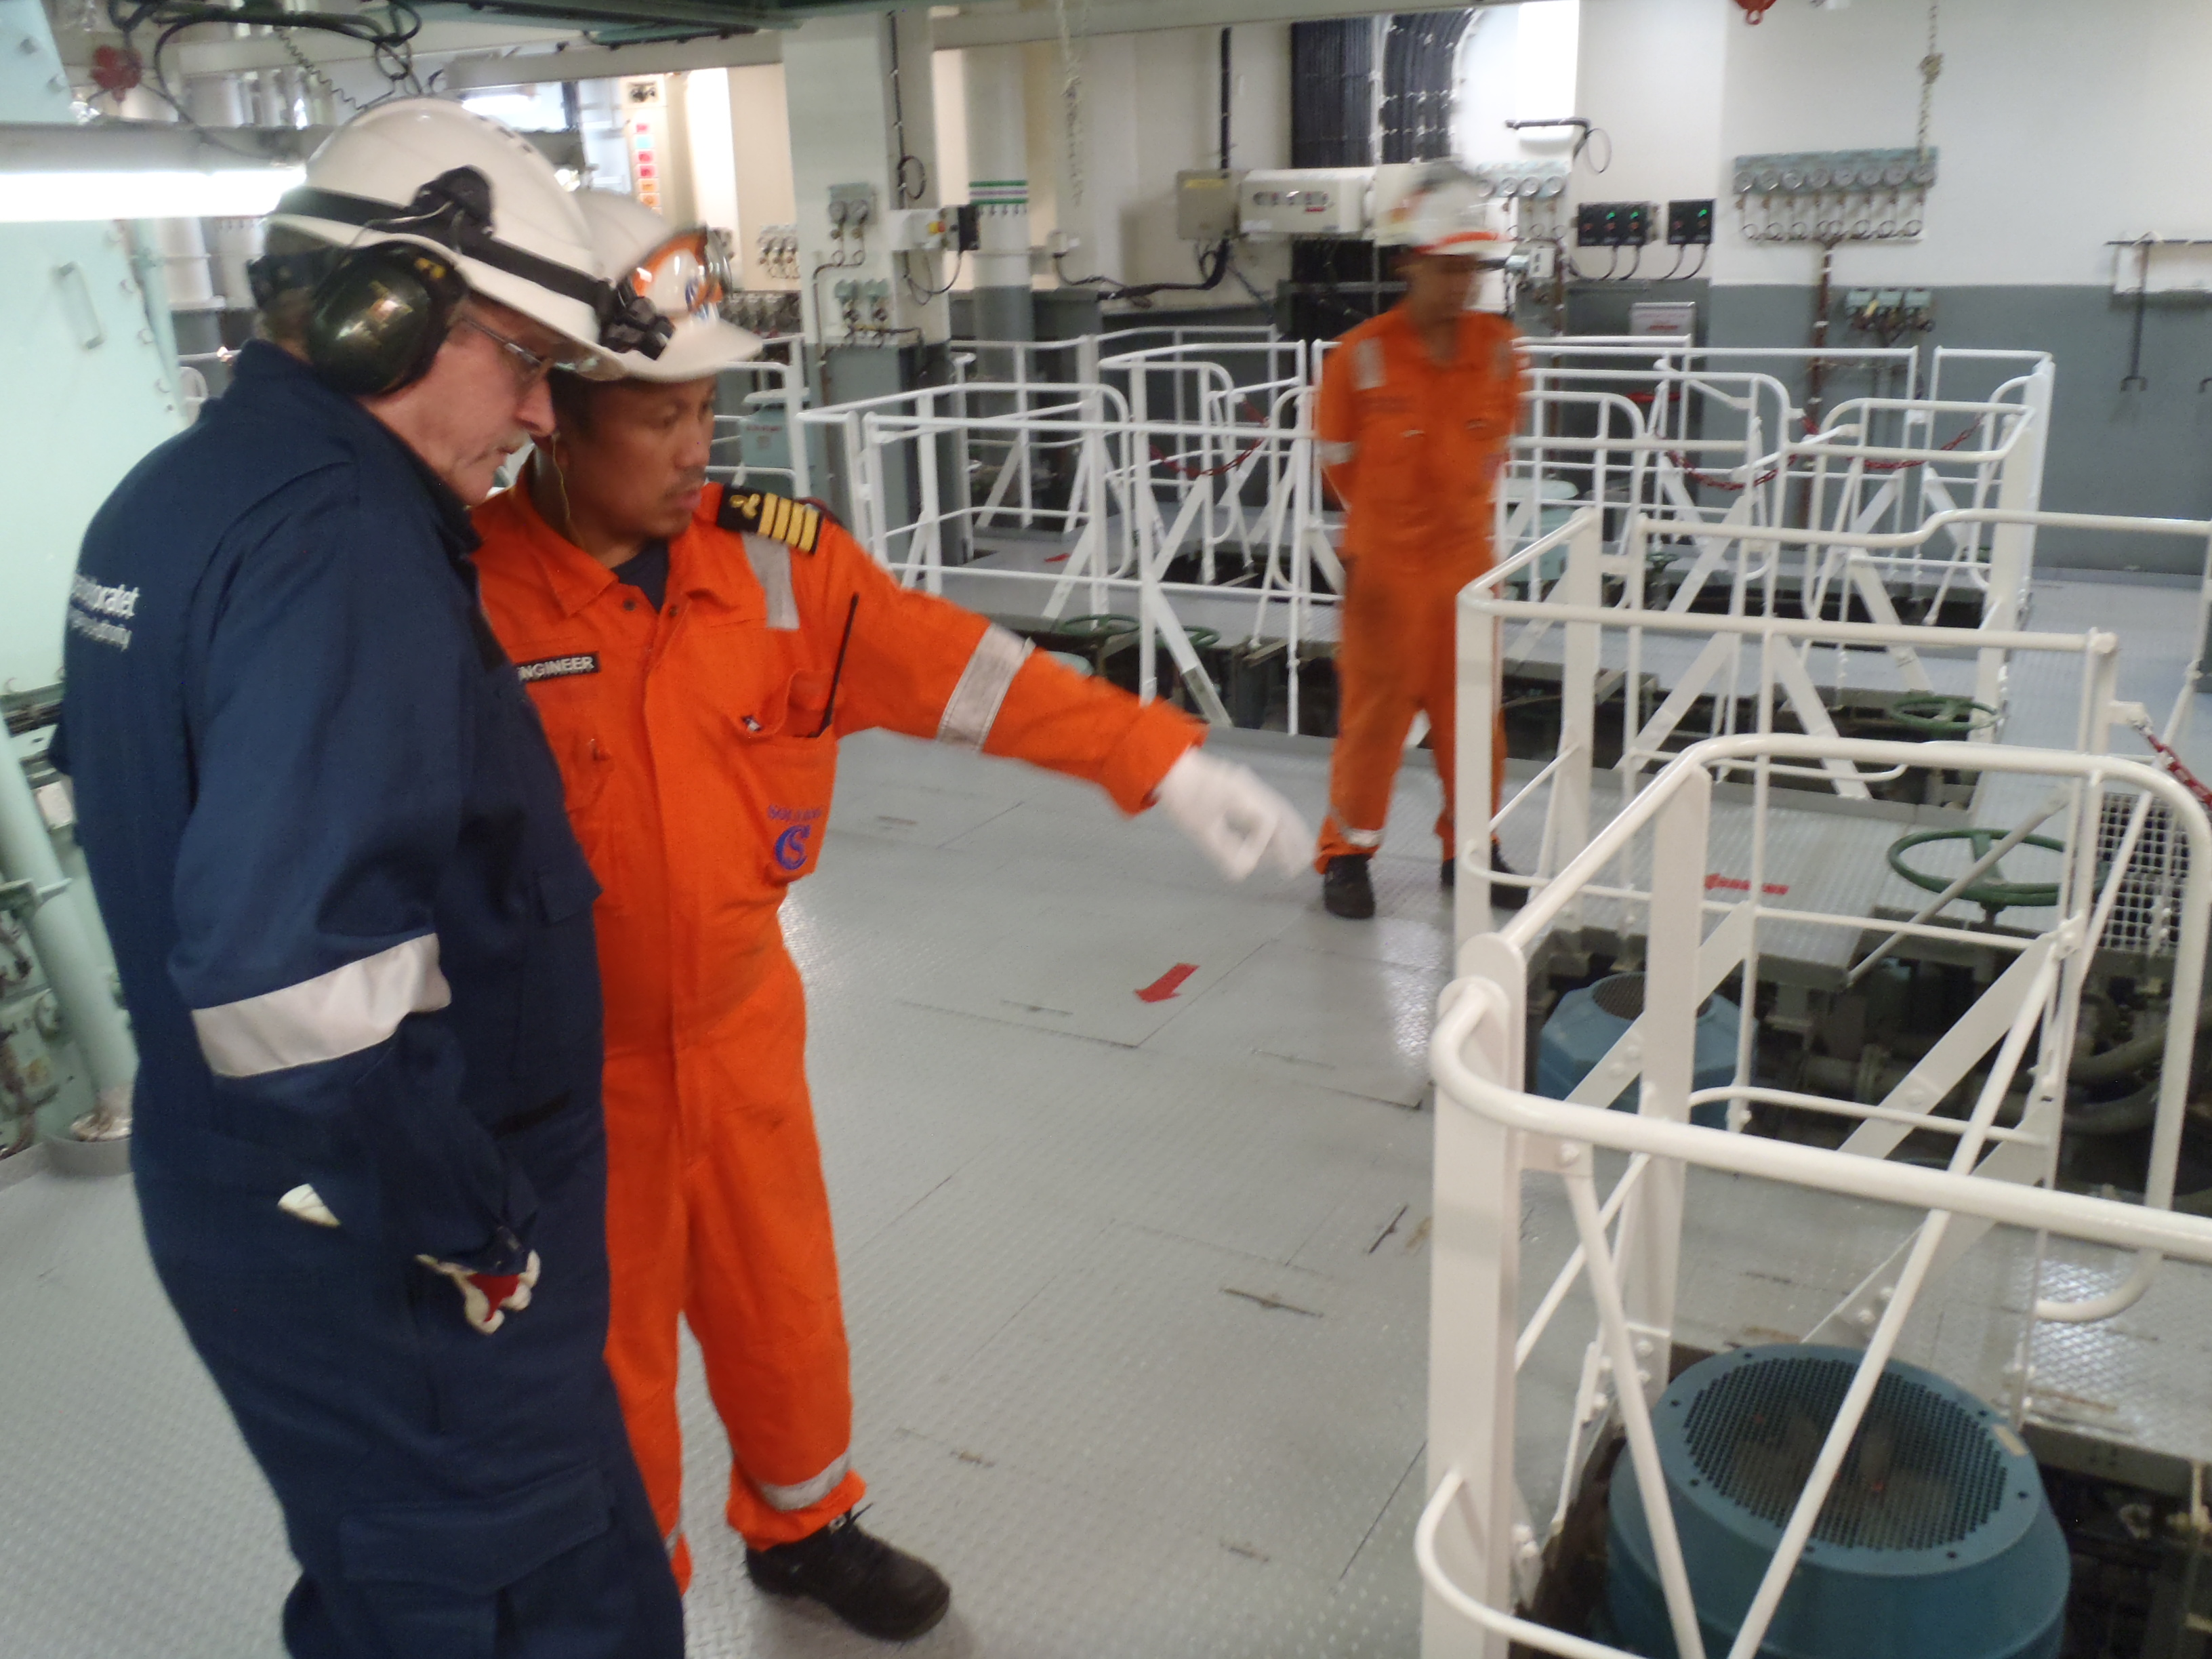 A uniformed surveyor (Kjell Jakobsen) is talking to the chief engineer on board a ship.